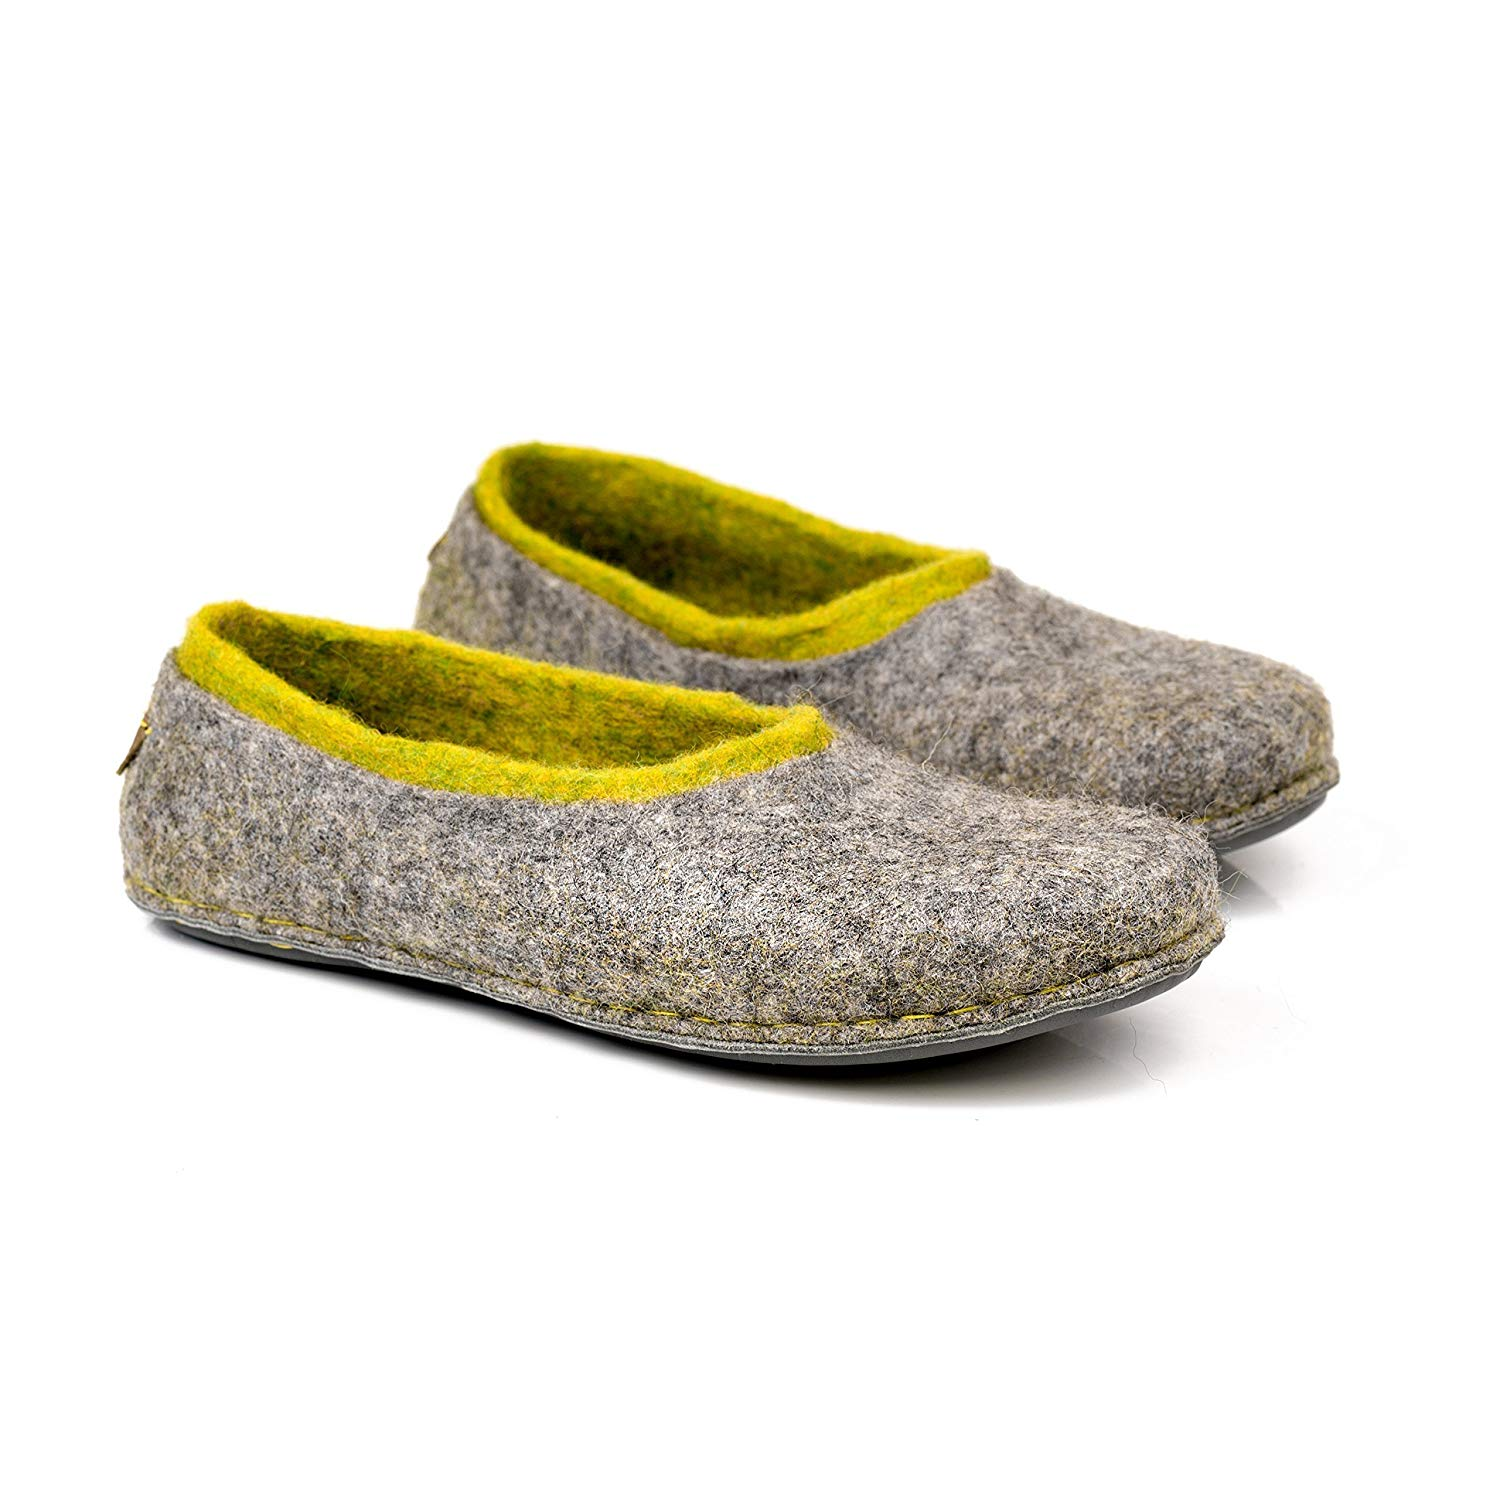 d0141d1a8f91 Get Quotations · Gray felted wool slippers with neon green inner layer for  her, Handmade women home shoes